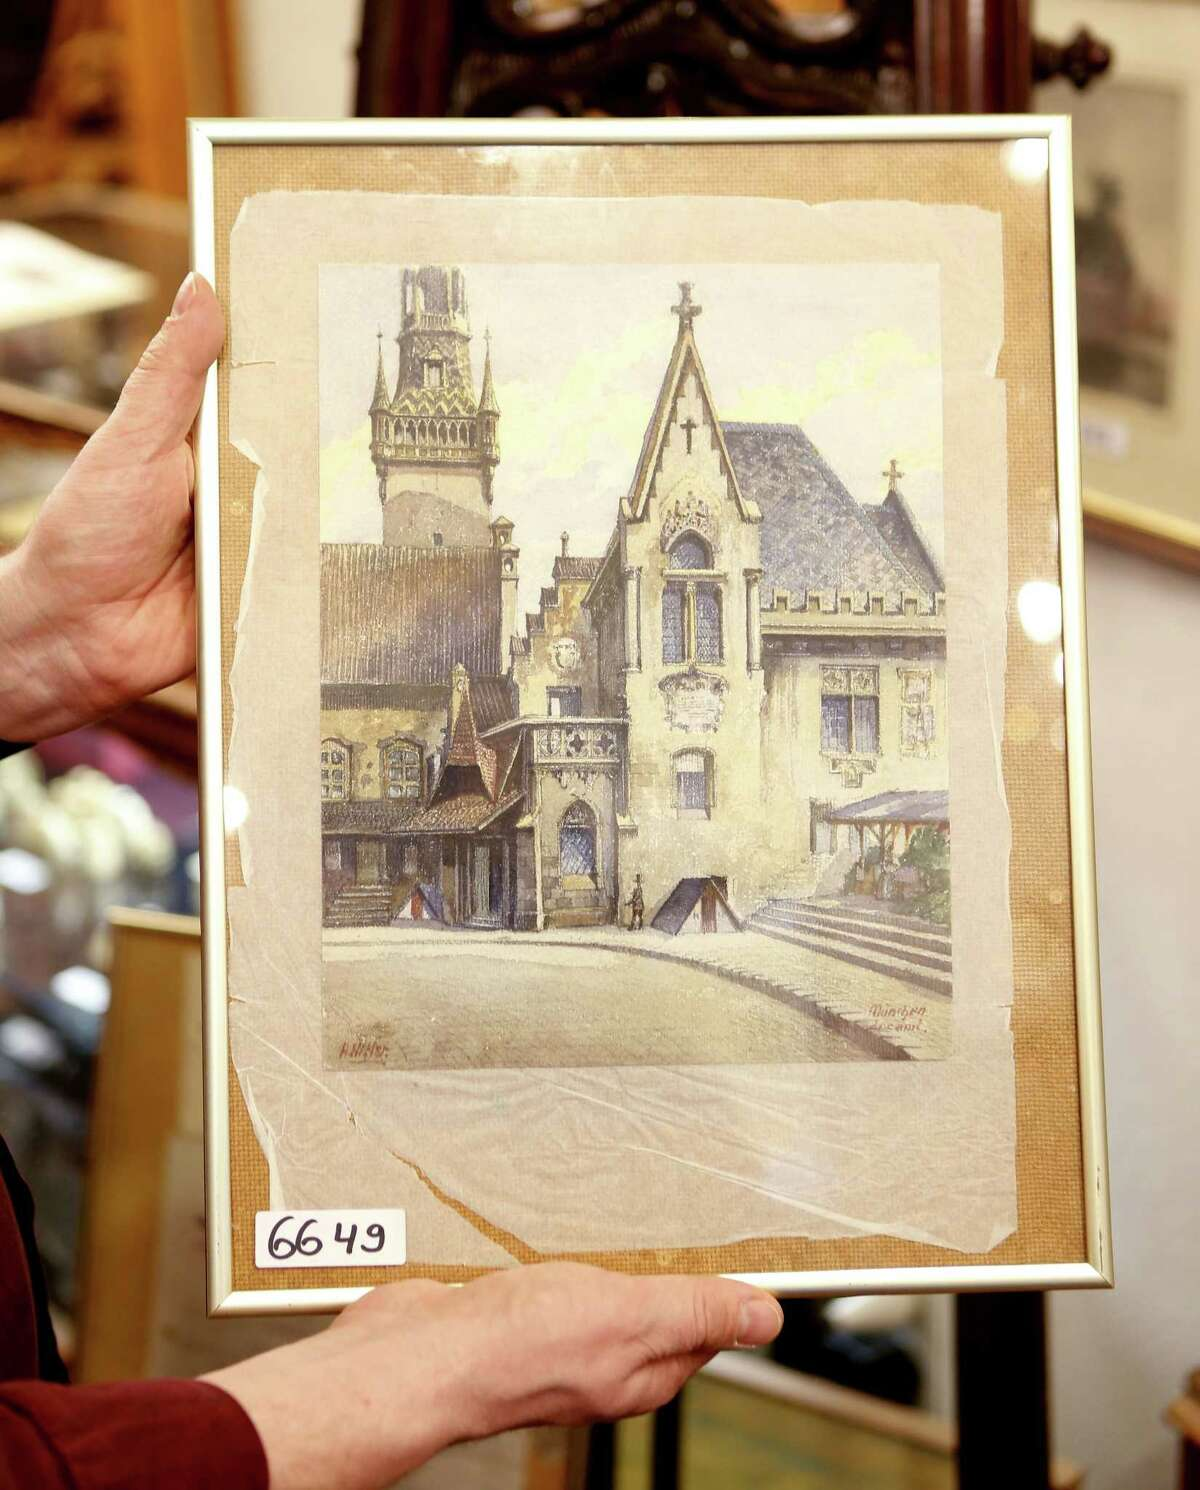 In this photo taken Wednesday, Nov. 19, 2014, a picture titled ìThe Old City Hallî that - as the auction house said - was painted by Adolf Hitler is displayed in an auction house in Nuremberg, Germany. The 100-year-old watercolor of Munichís city hall is expected to fetch at least 50,000 euros (US$ 60,000) at auction this weekend, not so much for its artistic value as for the signature in the bottom left corner: A. Hitler. (AP Photo/Michael Probst)